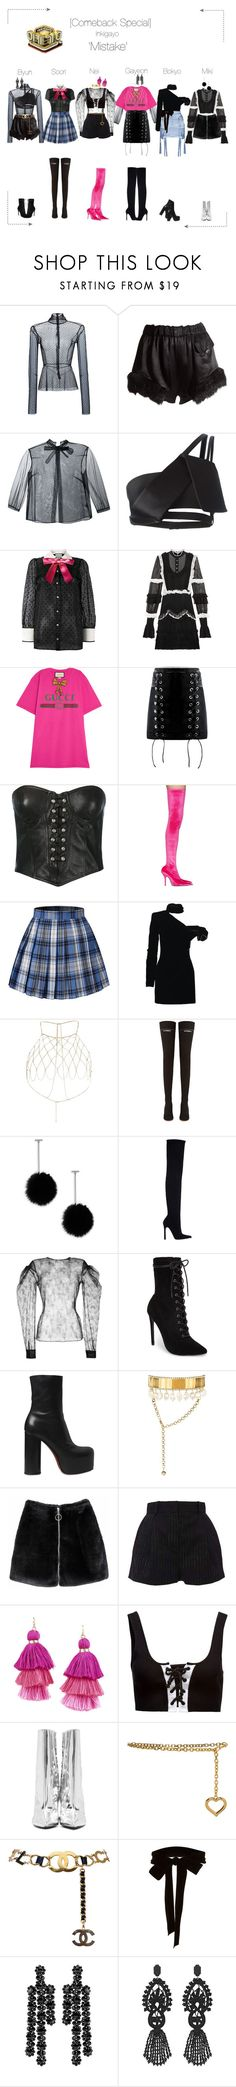 """""""Lunar (루나) [Comeback Special] 'Mistake' Inkigayo"""" by lunar-official ❤ liked on Polyvore featuring Tome, Vivienne Westwood, Simone Rocha, Illustrated People, Thierry Mugler, Gucci, Versace, Balenciaga, Yves Saint Laurent and River Island"""